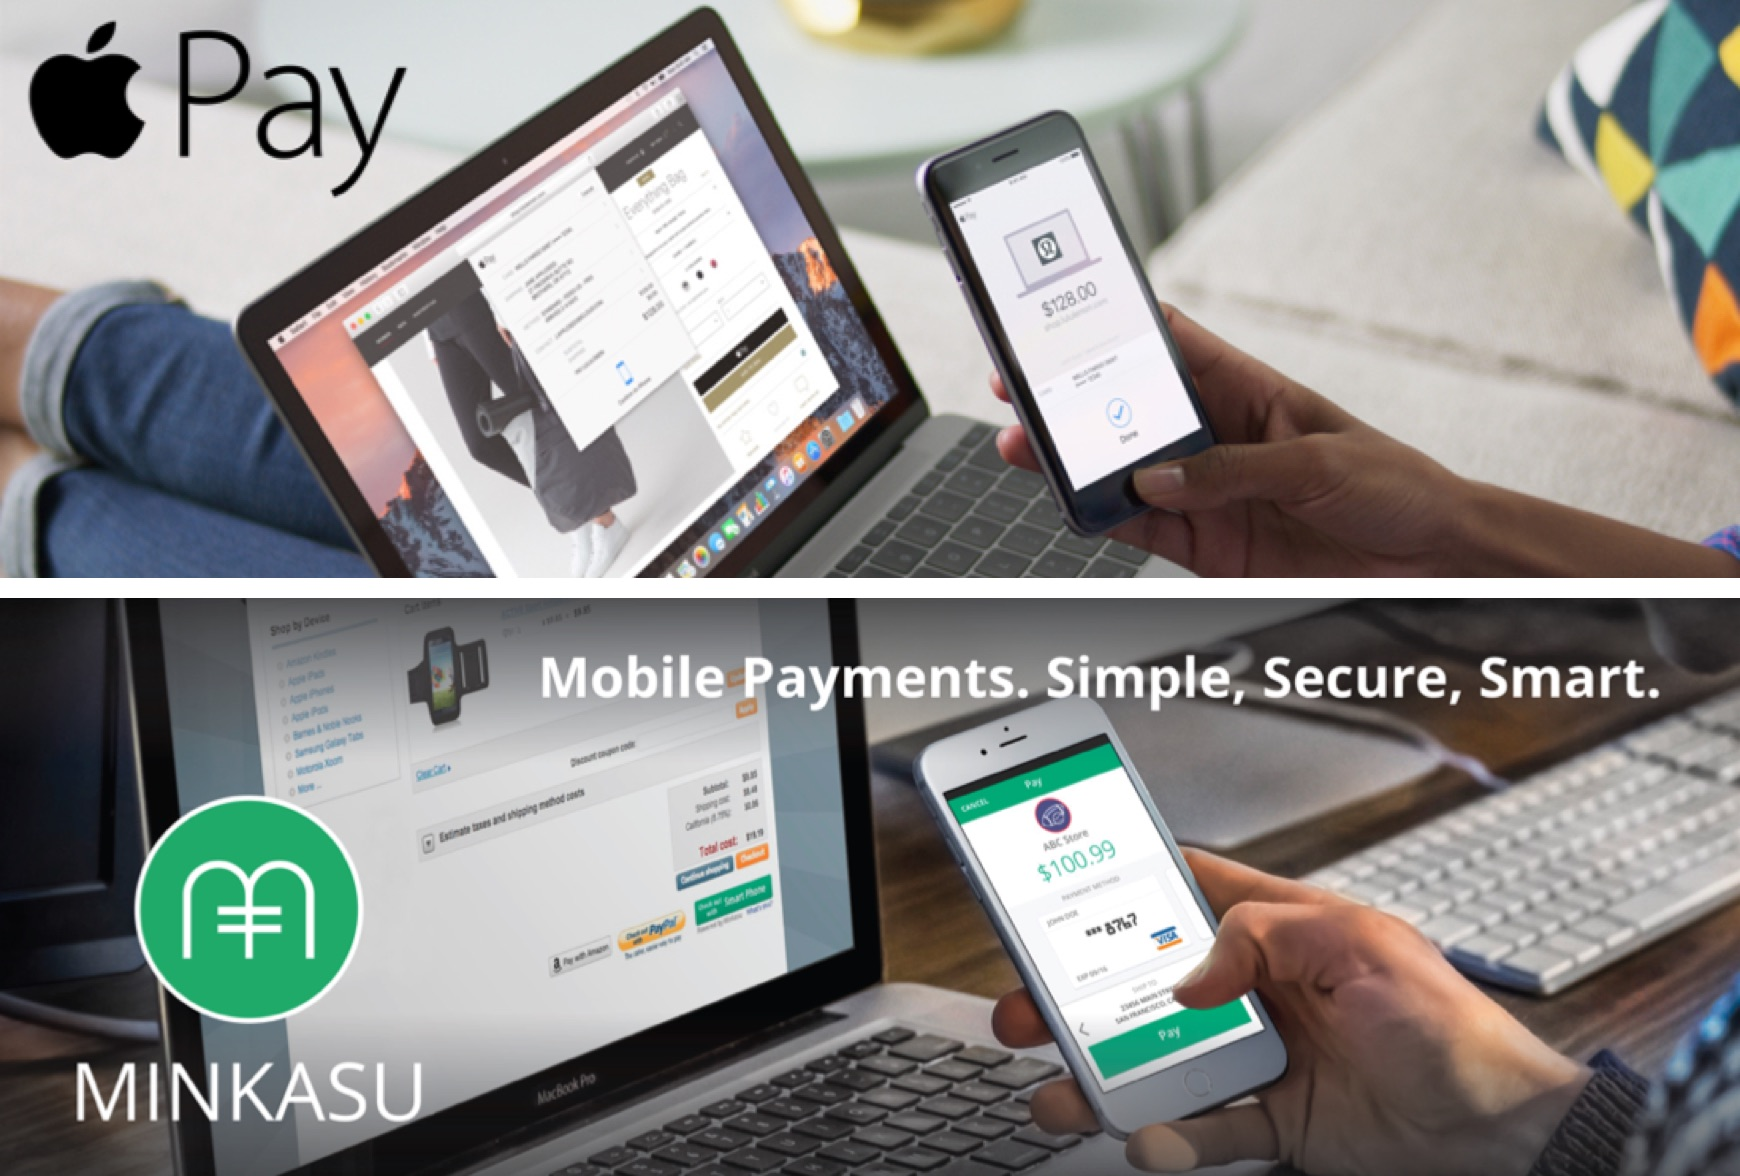 apple-pay-vs-minkasu